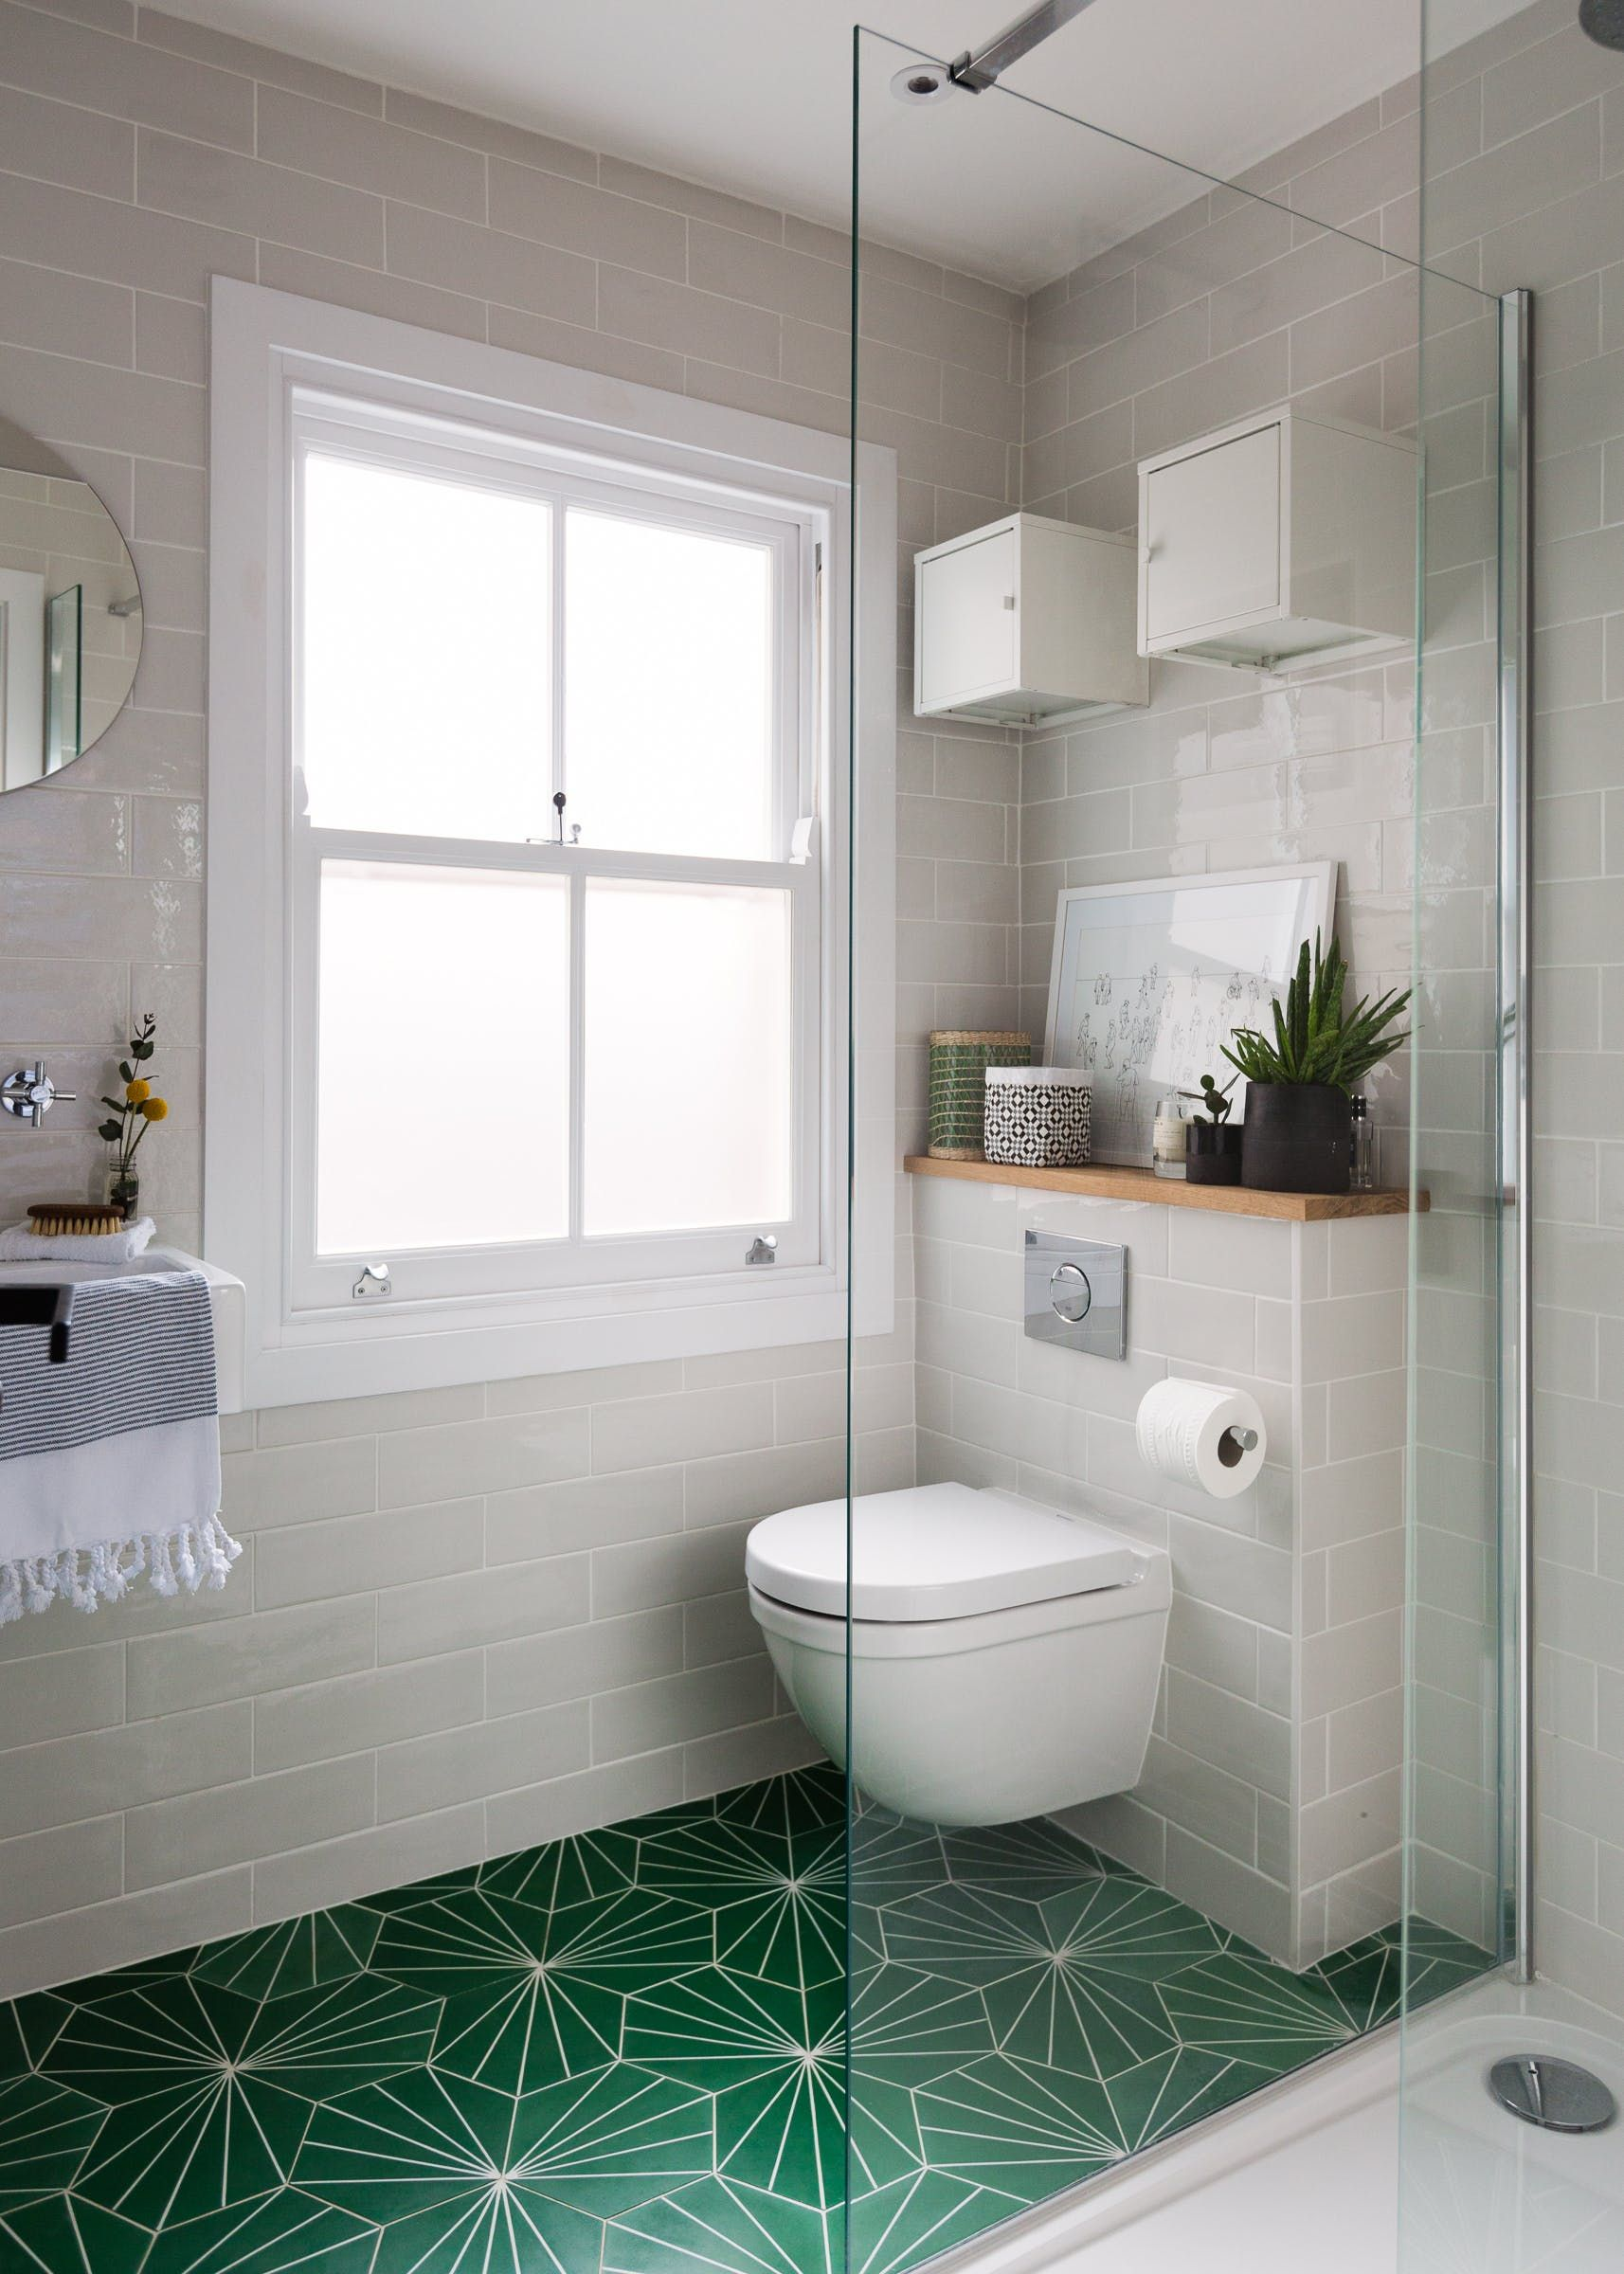 Tour a Colorful & Contemporary London Flat   Shower screen, Wood ...